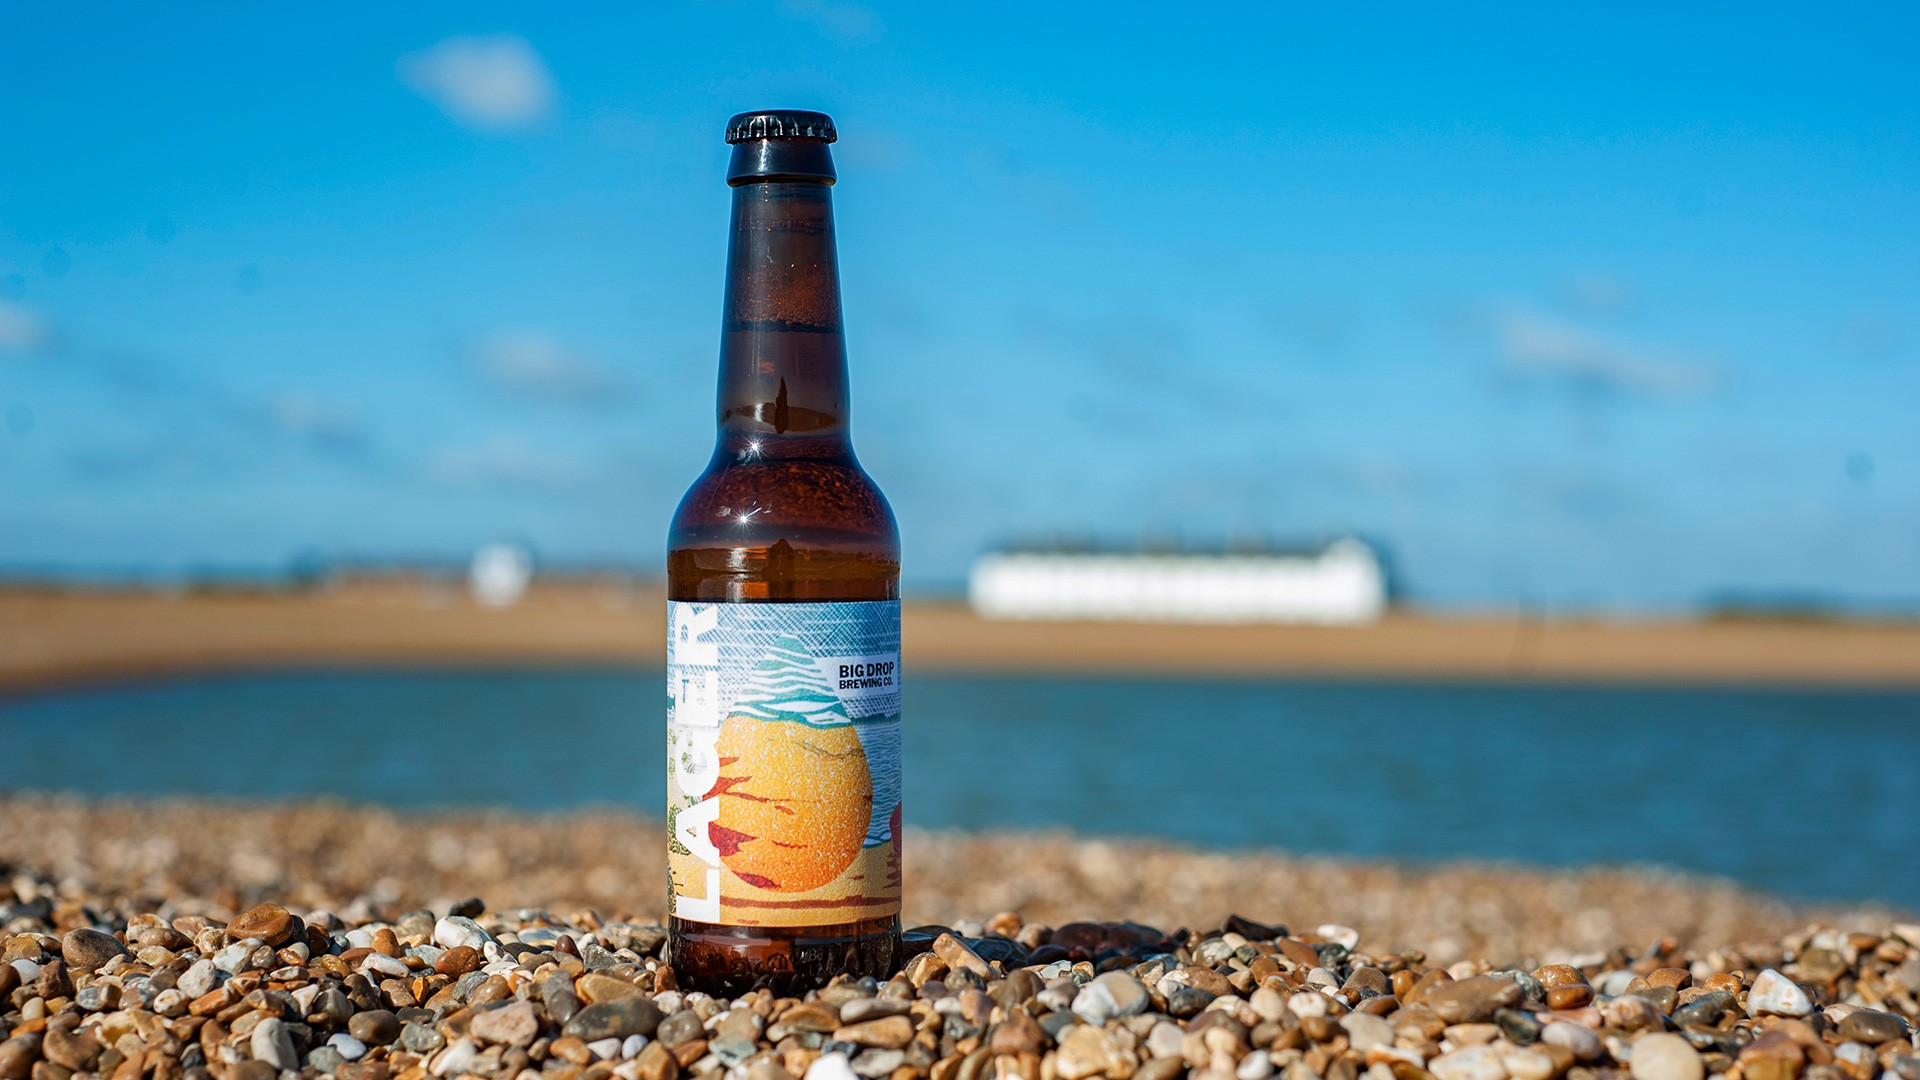 Slough-based low-alcohol brewer Big Drop